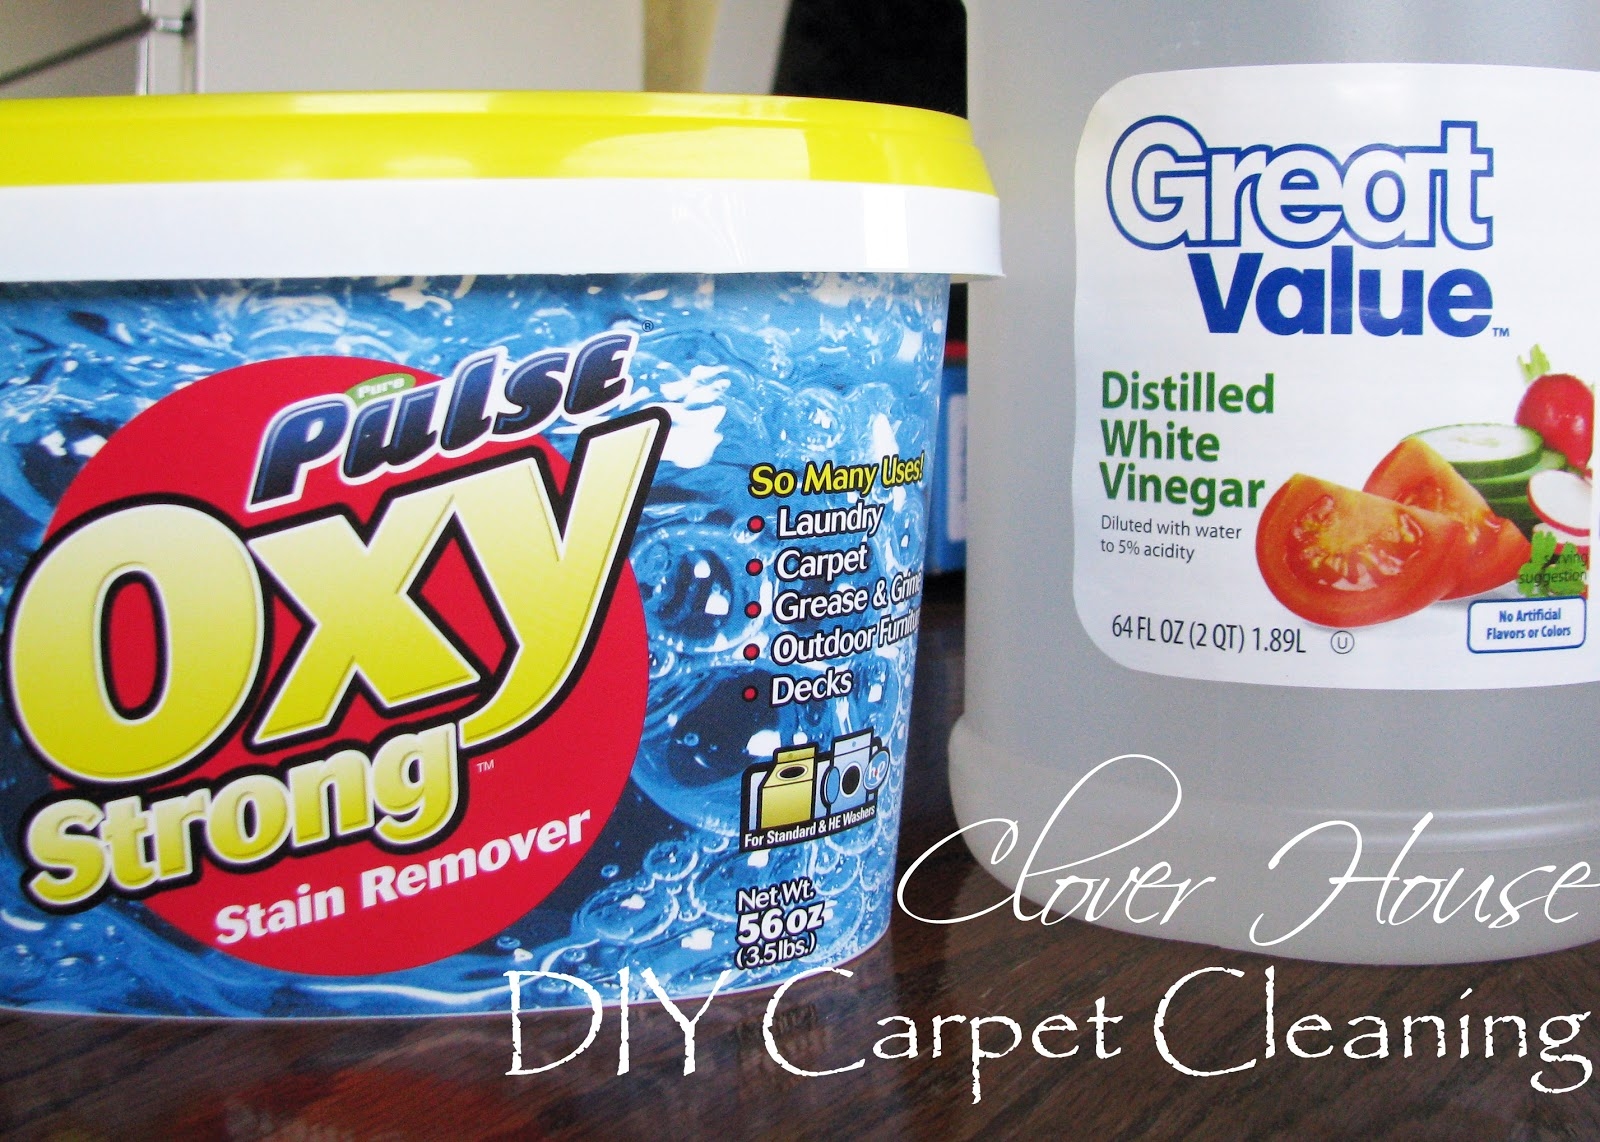 diy carpet cleaner. DIY Carpet Cleaning Mixture: 2 1/2 Cups Of Distilled White Vinegar Scoops (4 Tblsp) Oxy Clean. Warm To Hot Water The Fill Line On Tank Diy Cleaner A